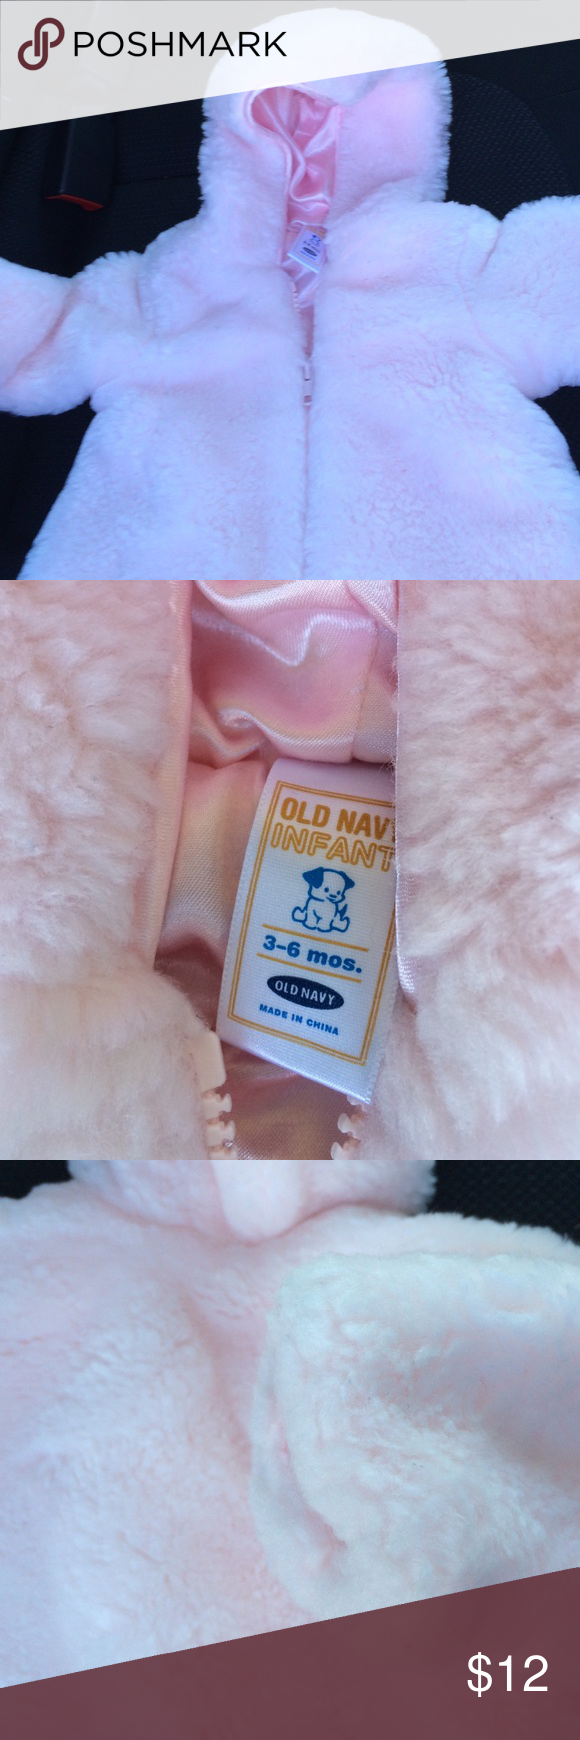 Old navy infant jacket 3-6 mo Excellent condition Old Navy Jackets & Coats